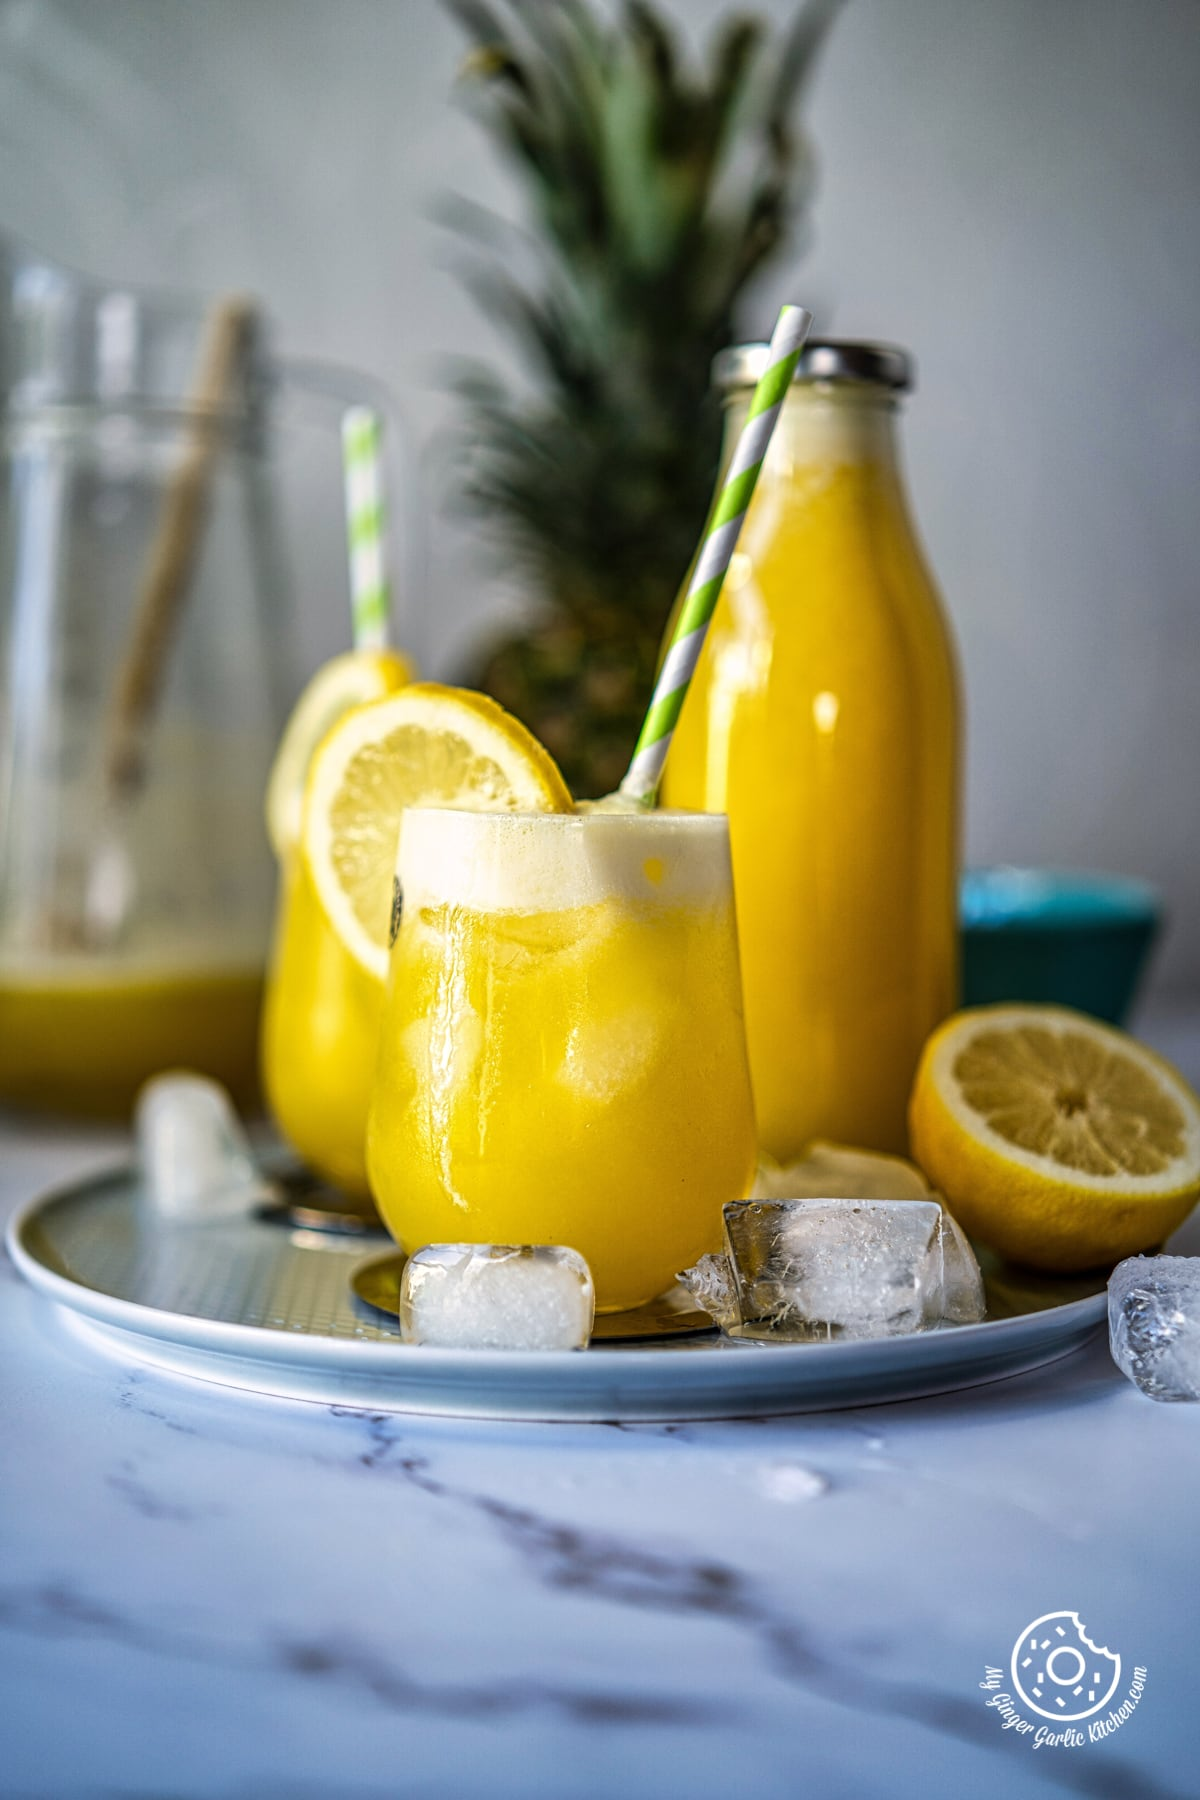 pineapple juice glass topped with a lemon slice and a bottle in the background